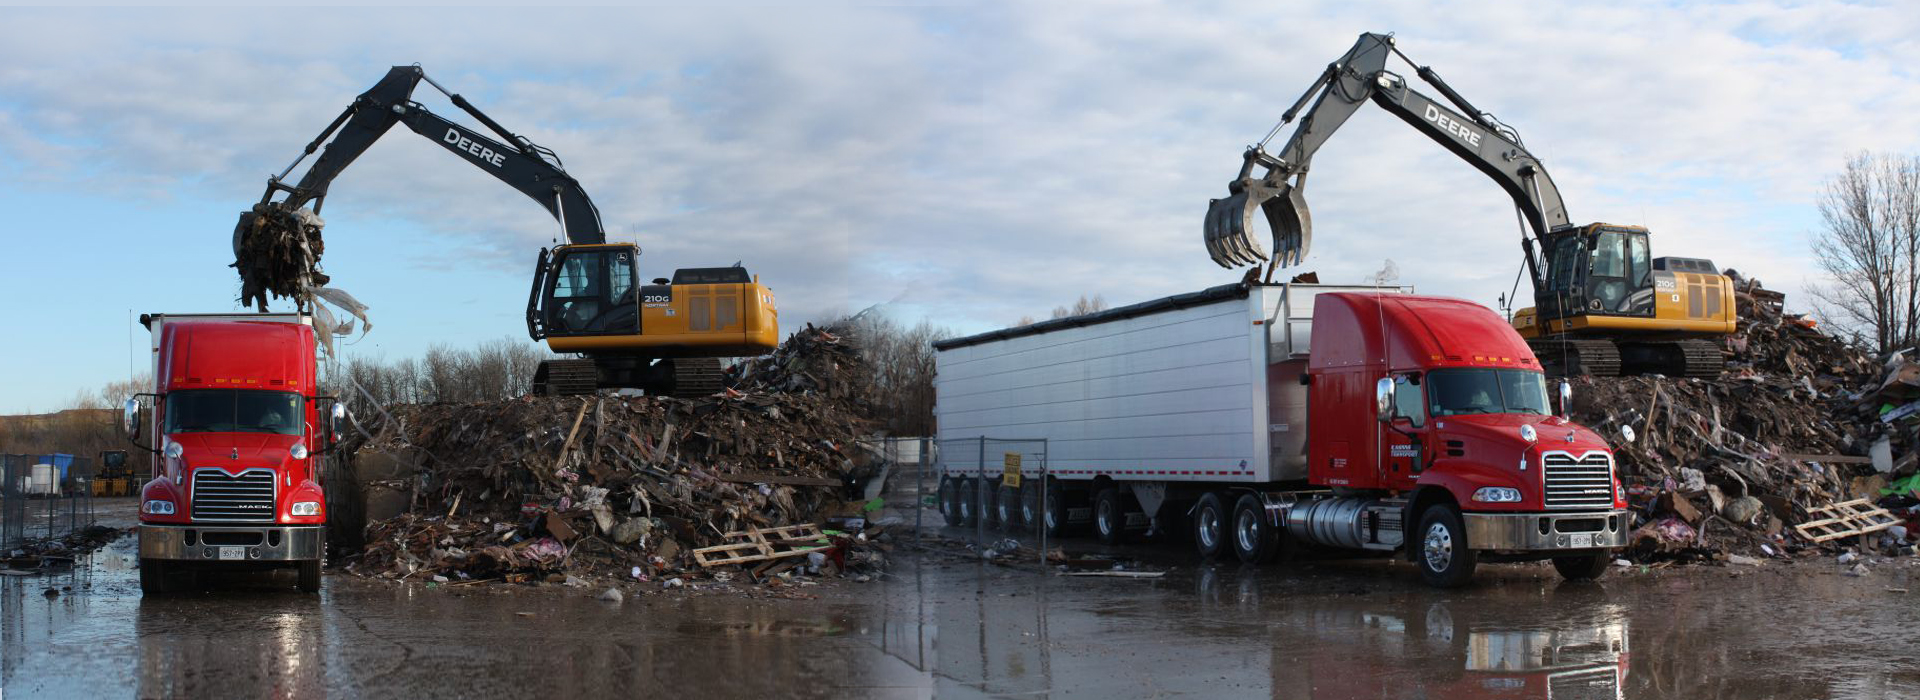 Commercial, Industrial and Residential recycling center serving Barrie, Simcoe County & nearby.